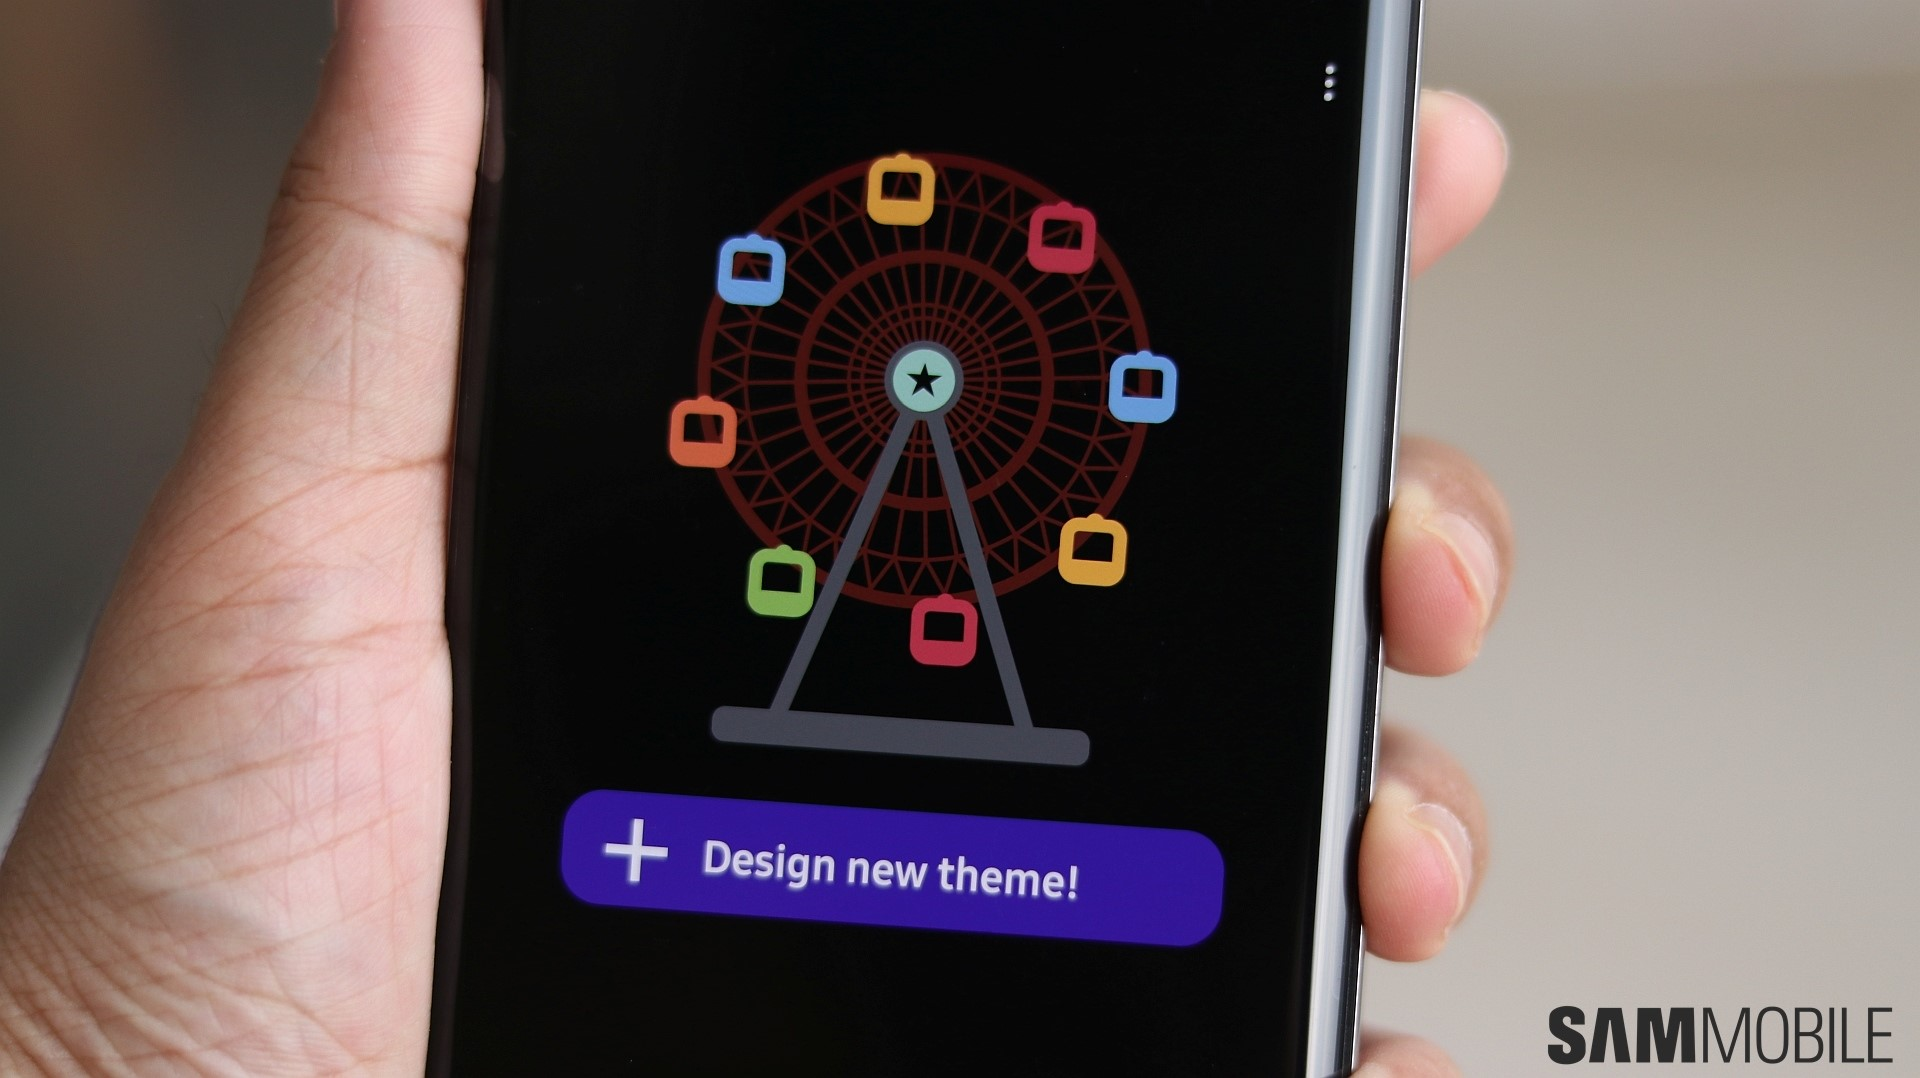 Samsung's newest app lets you create your own themes   SamMobile